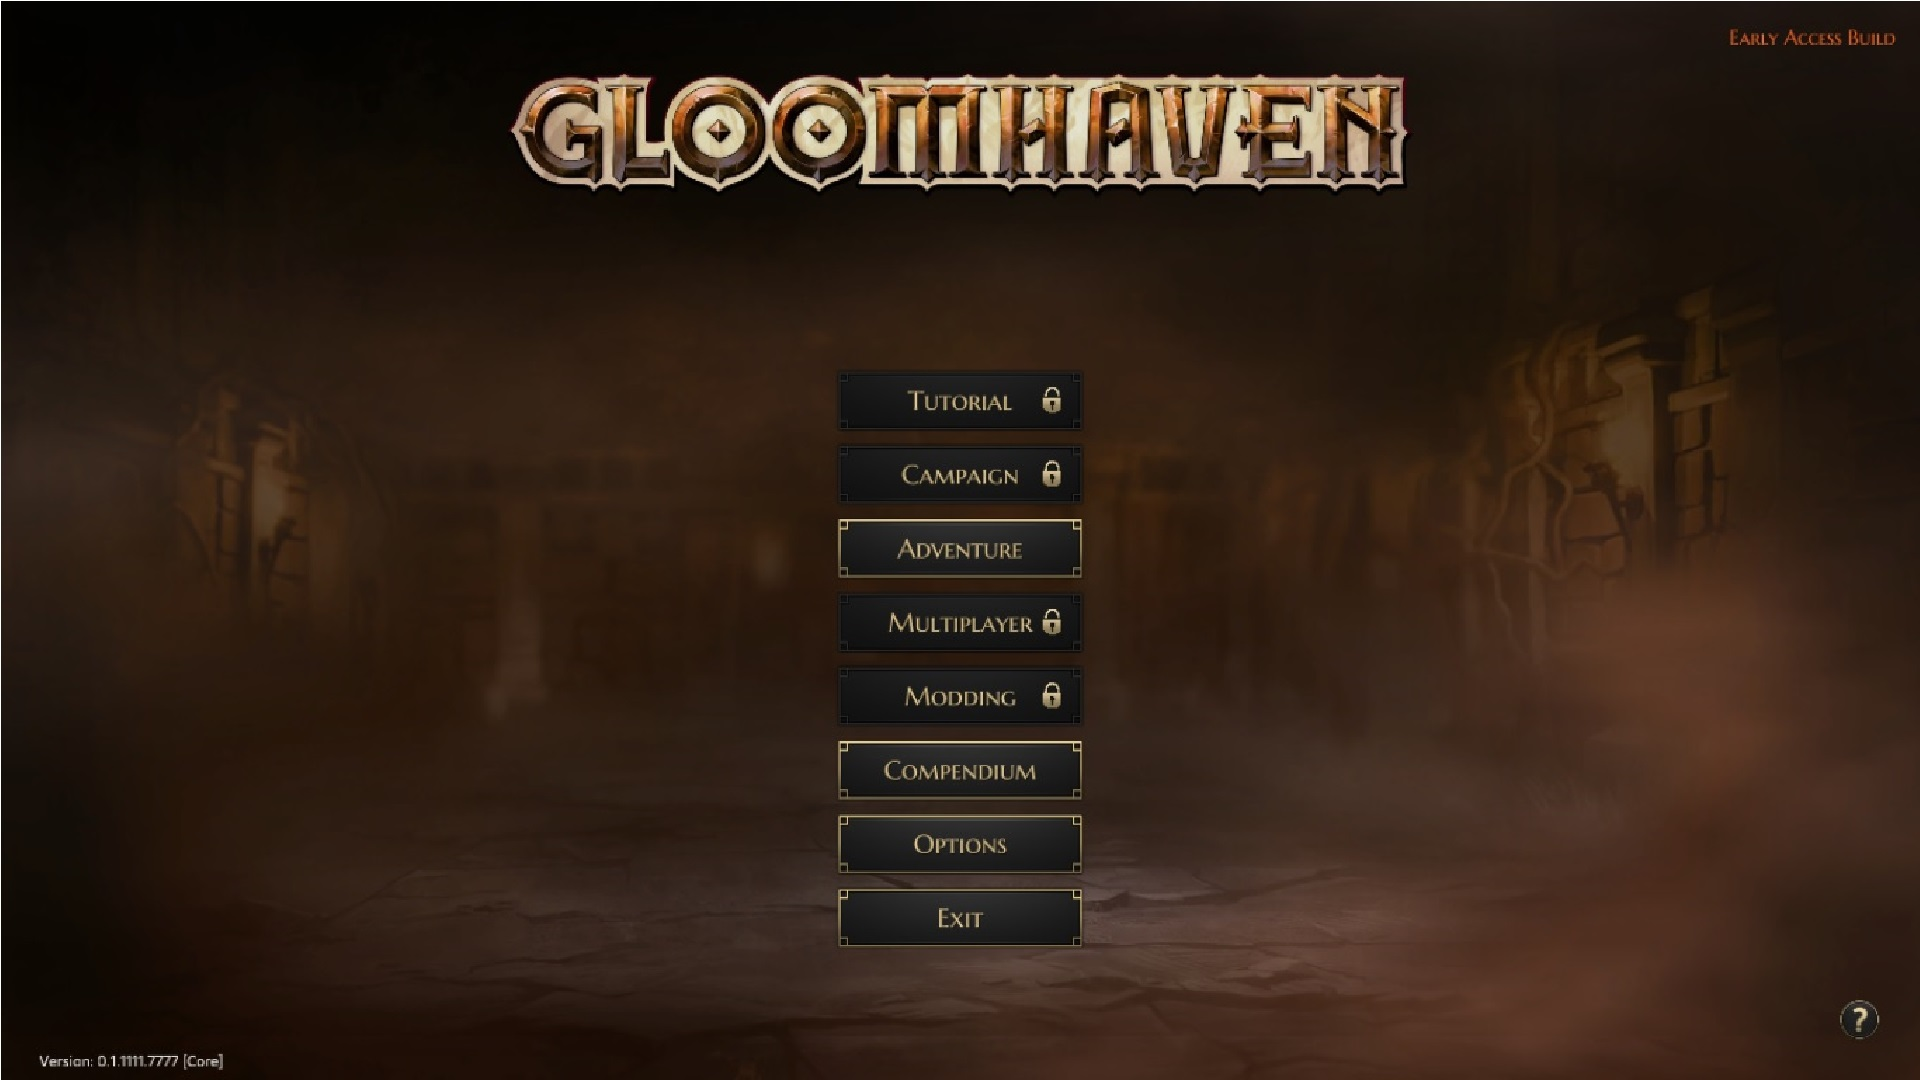 Gloomhaven title screen